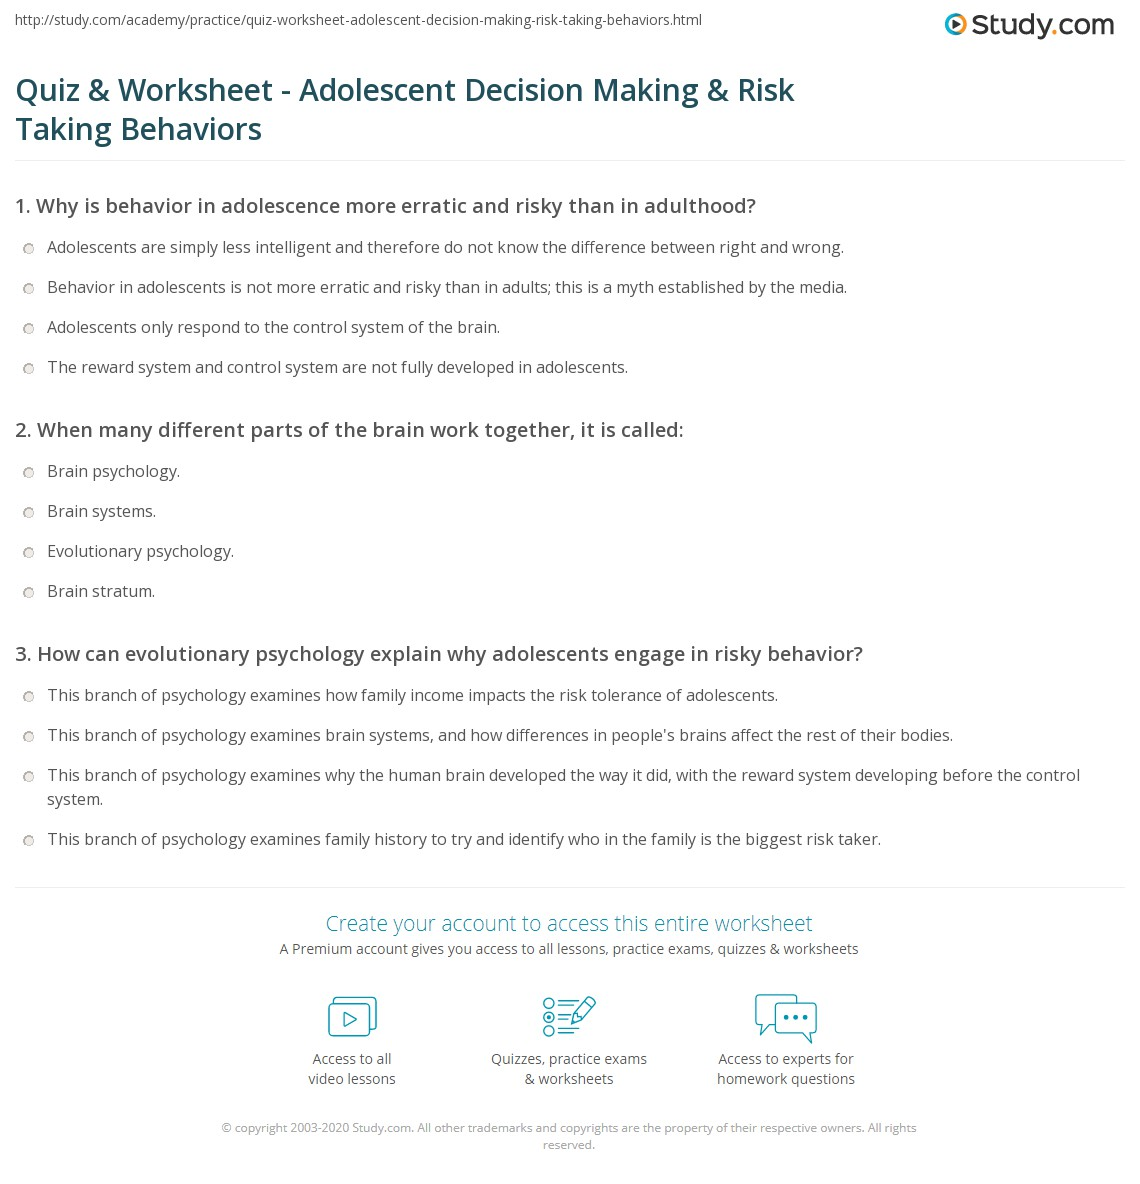 quiz worksheet adolescent decision making risk taking print decision making and risk taking behaviors in adolescence worksheet